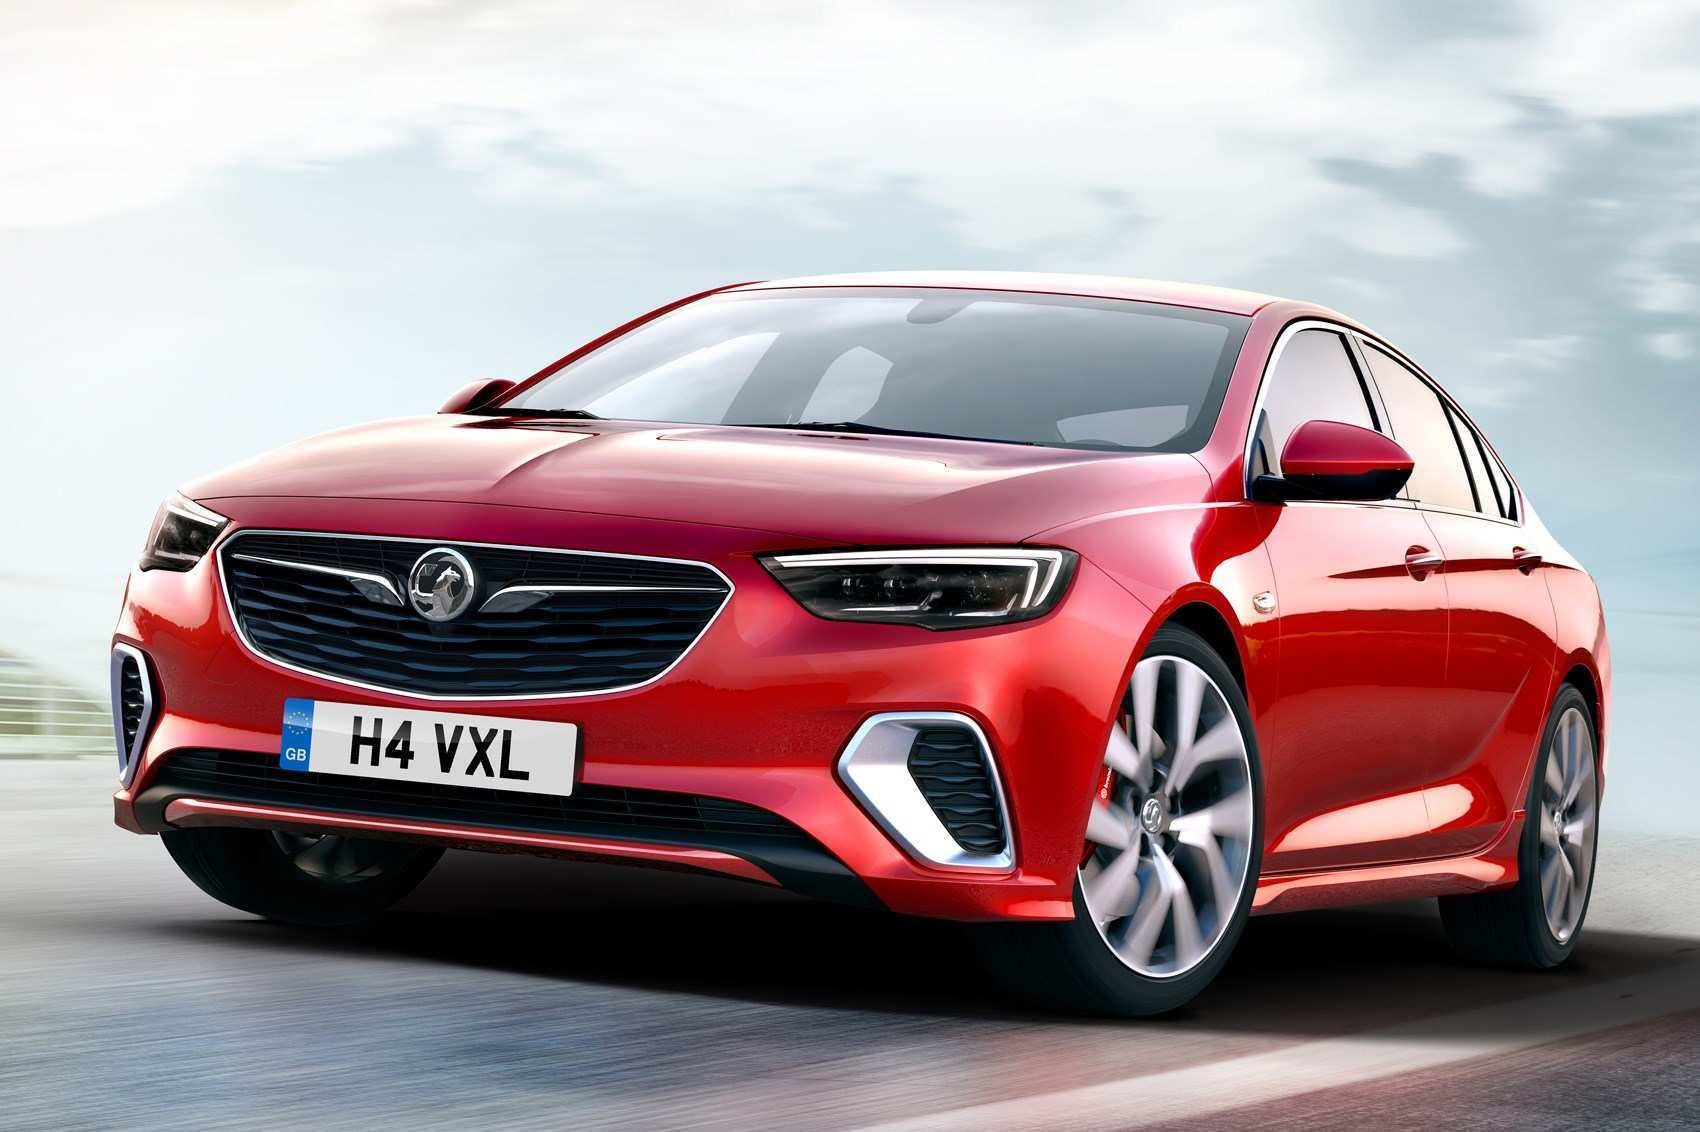 93 Best Review 2020 New Opel Insignia 2018 Exterior and Interior by 2020 New Opel Insignia 2018